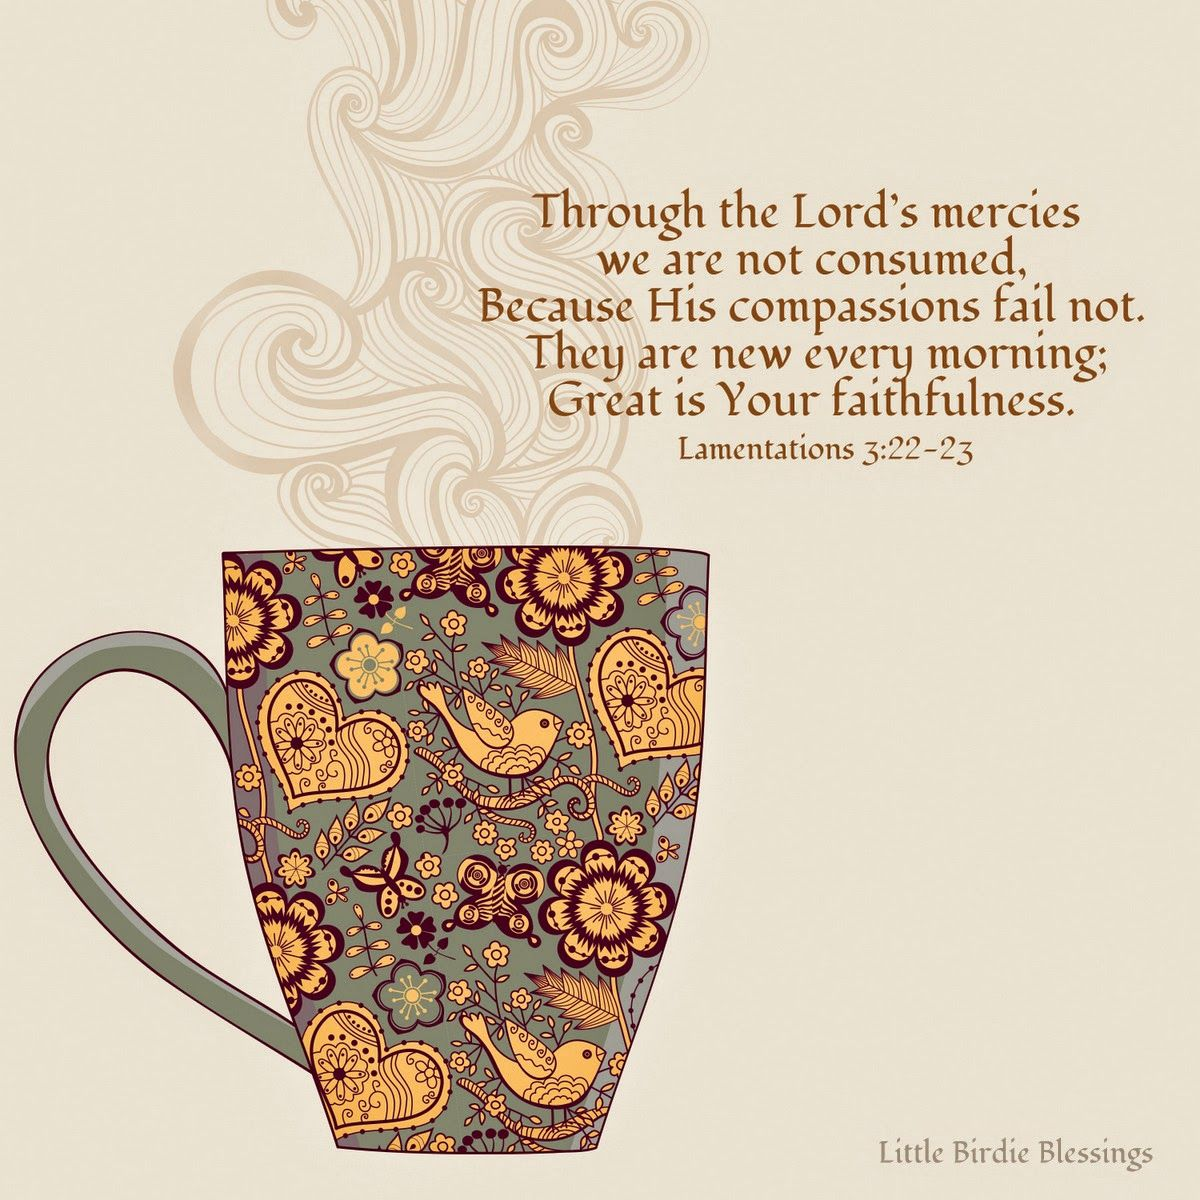 Little Birdie Blessings : A New Year with a Faithful God | Lord ...